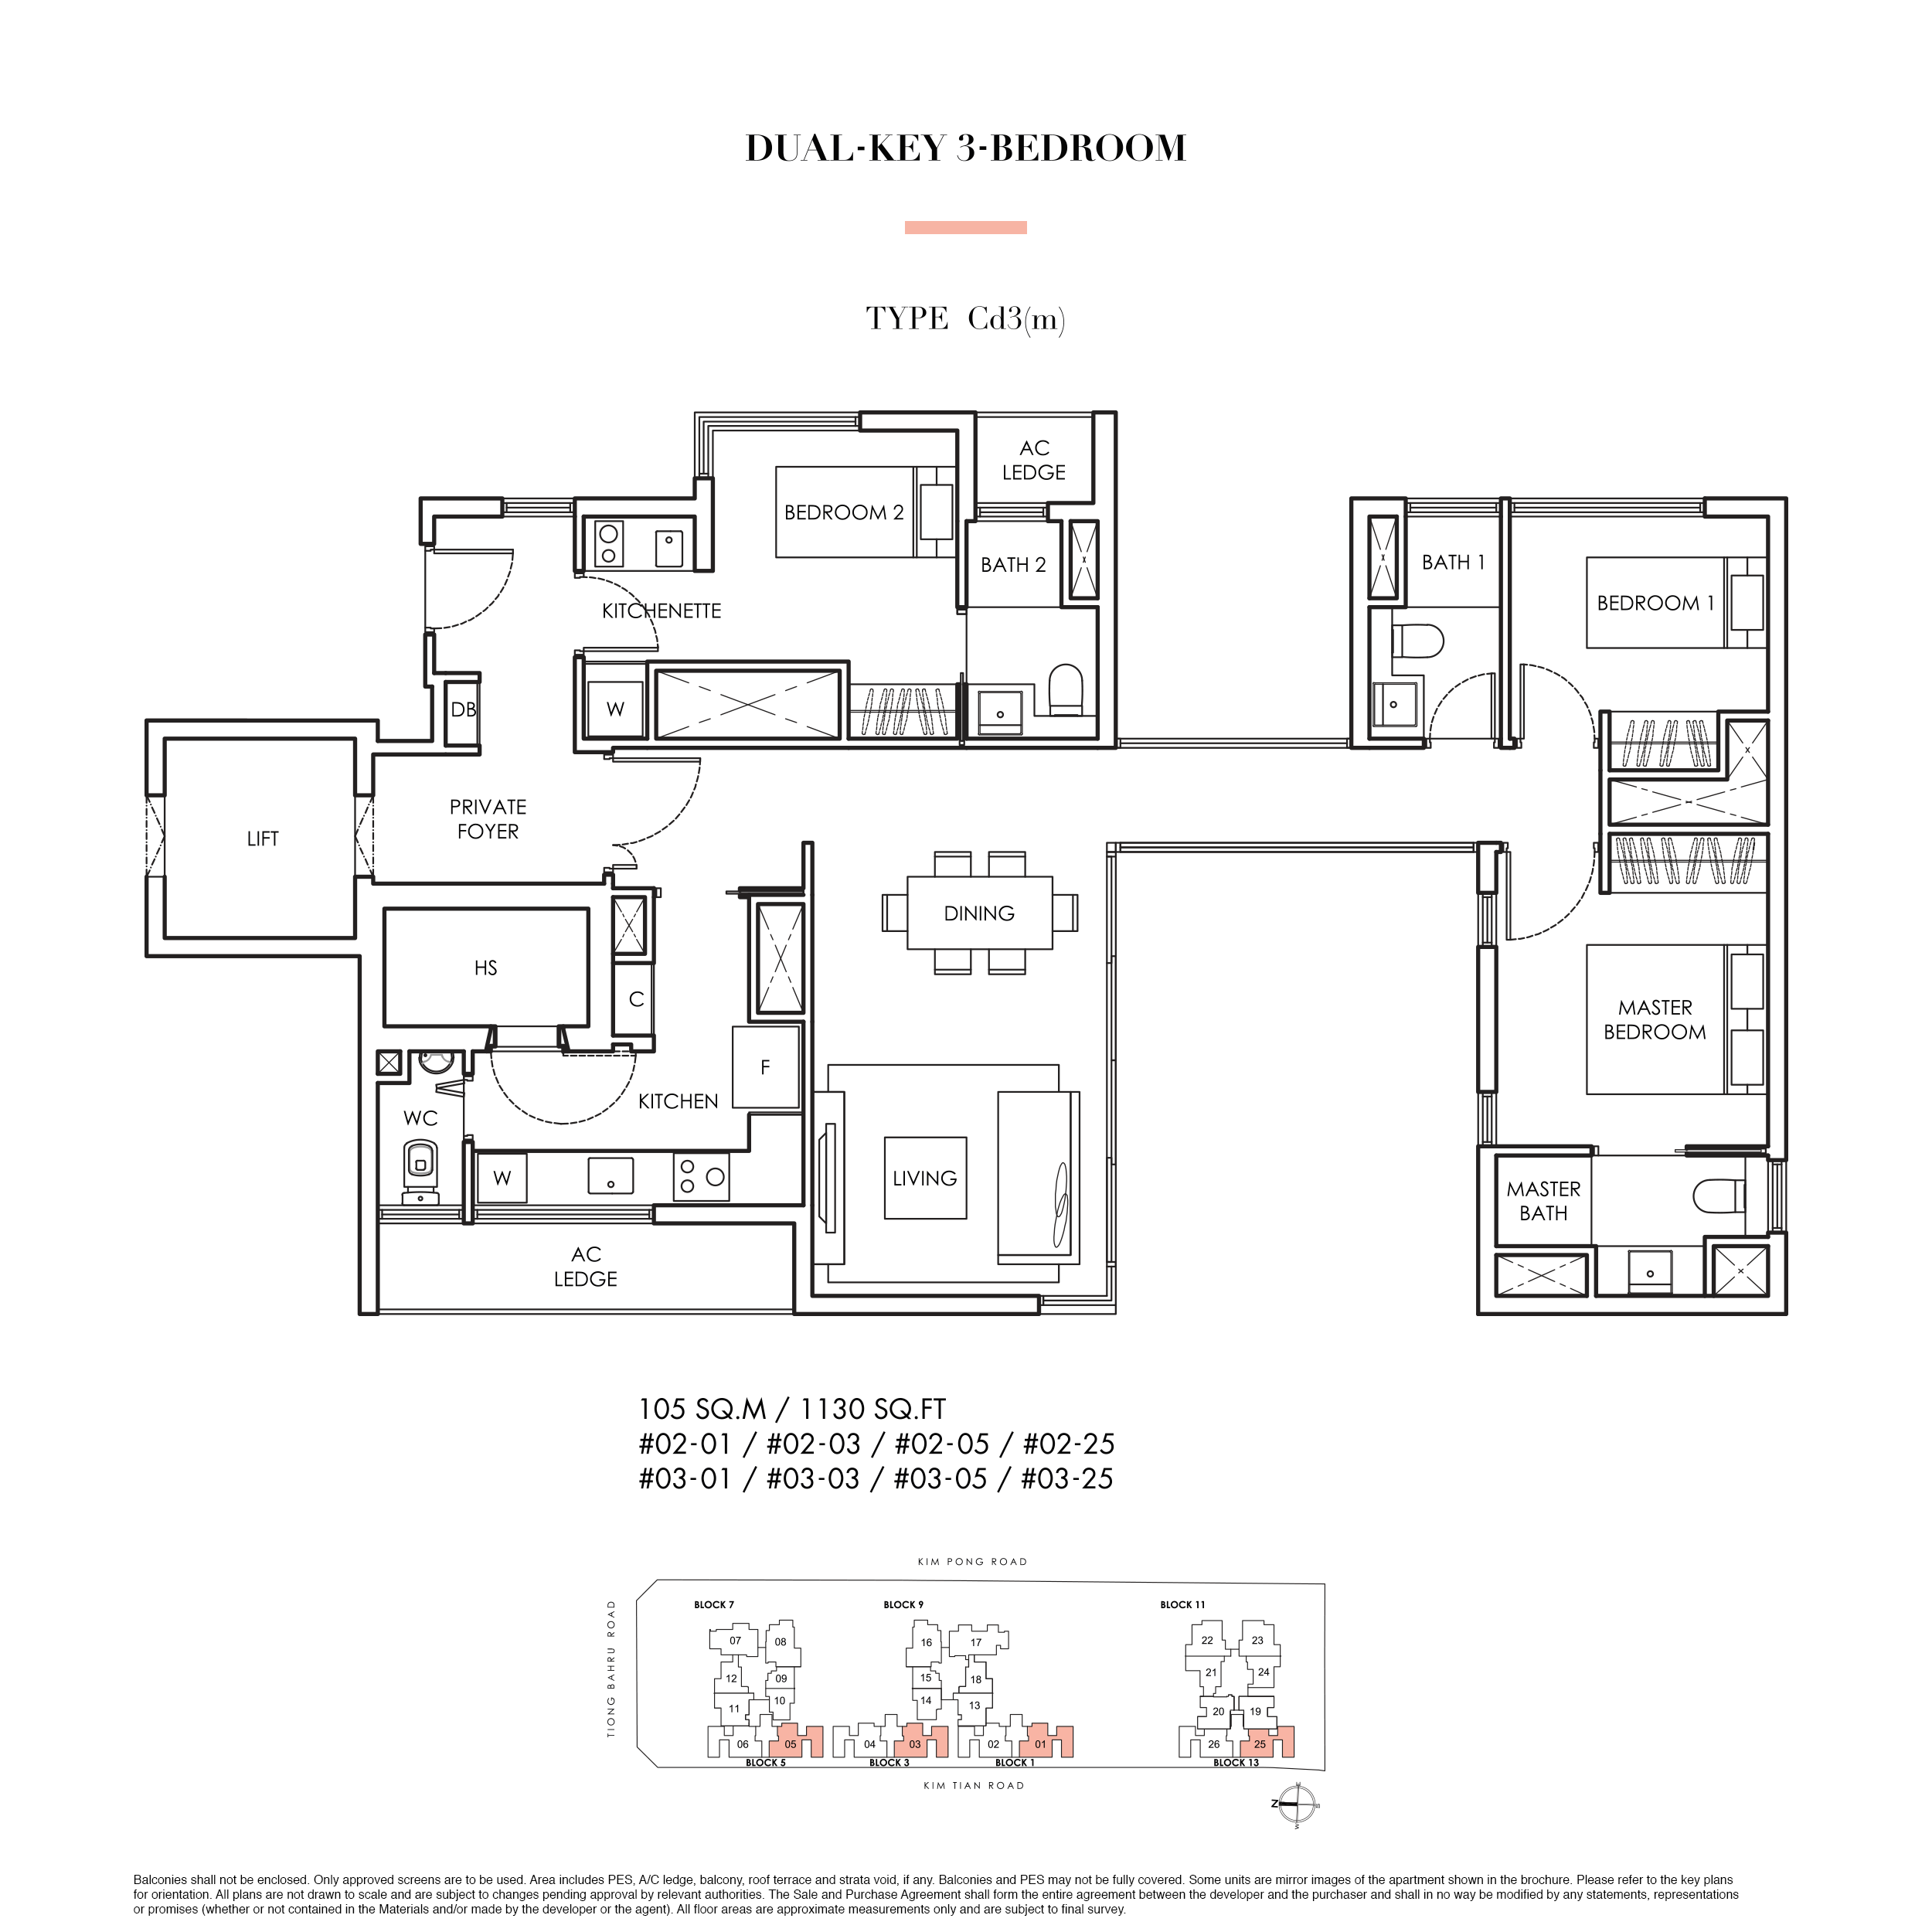 Photo architectural symbols floor plan images glamorous for 3 storey commercial building floor plan